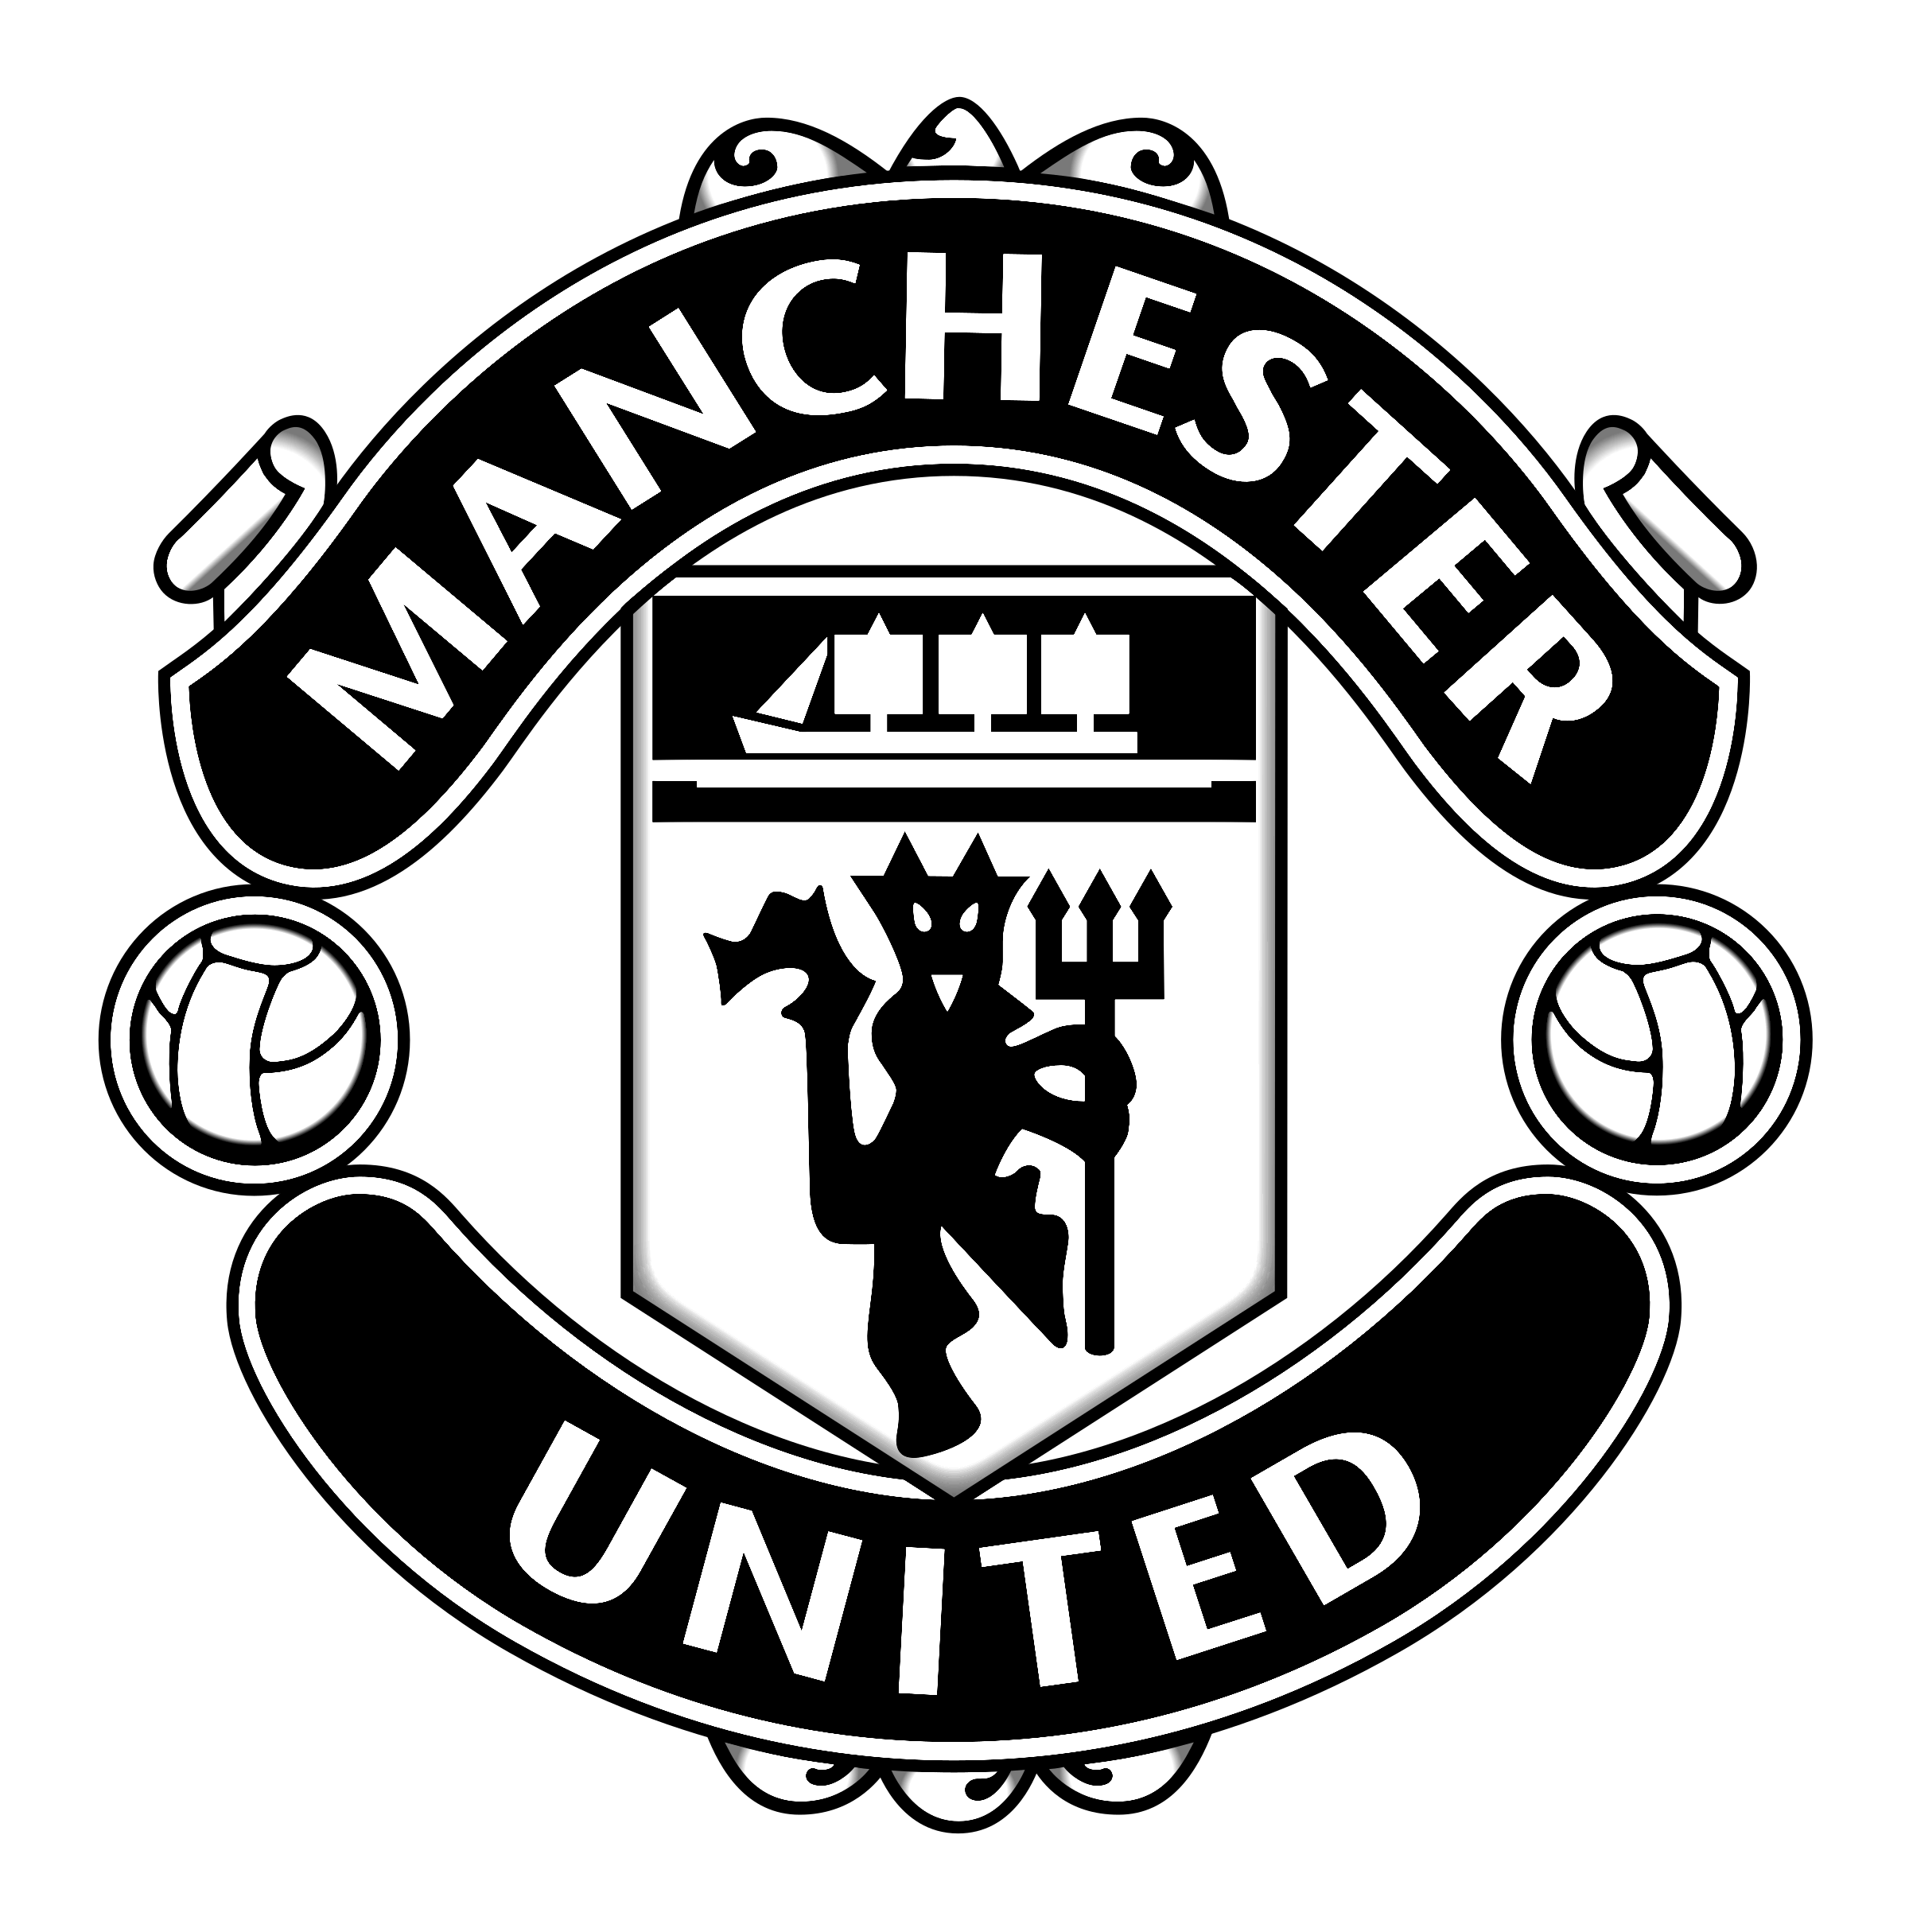 Manchester United logo black and white - Manchester United PNG